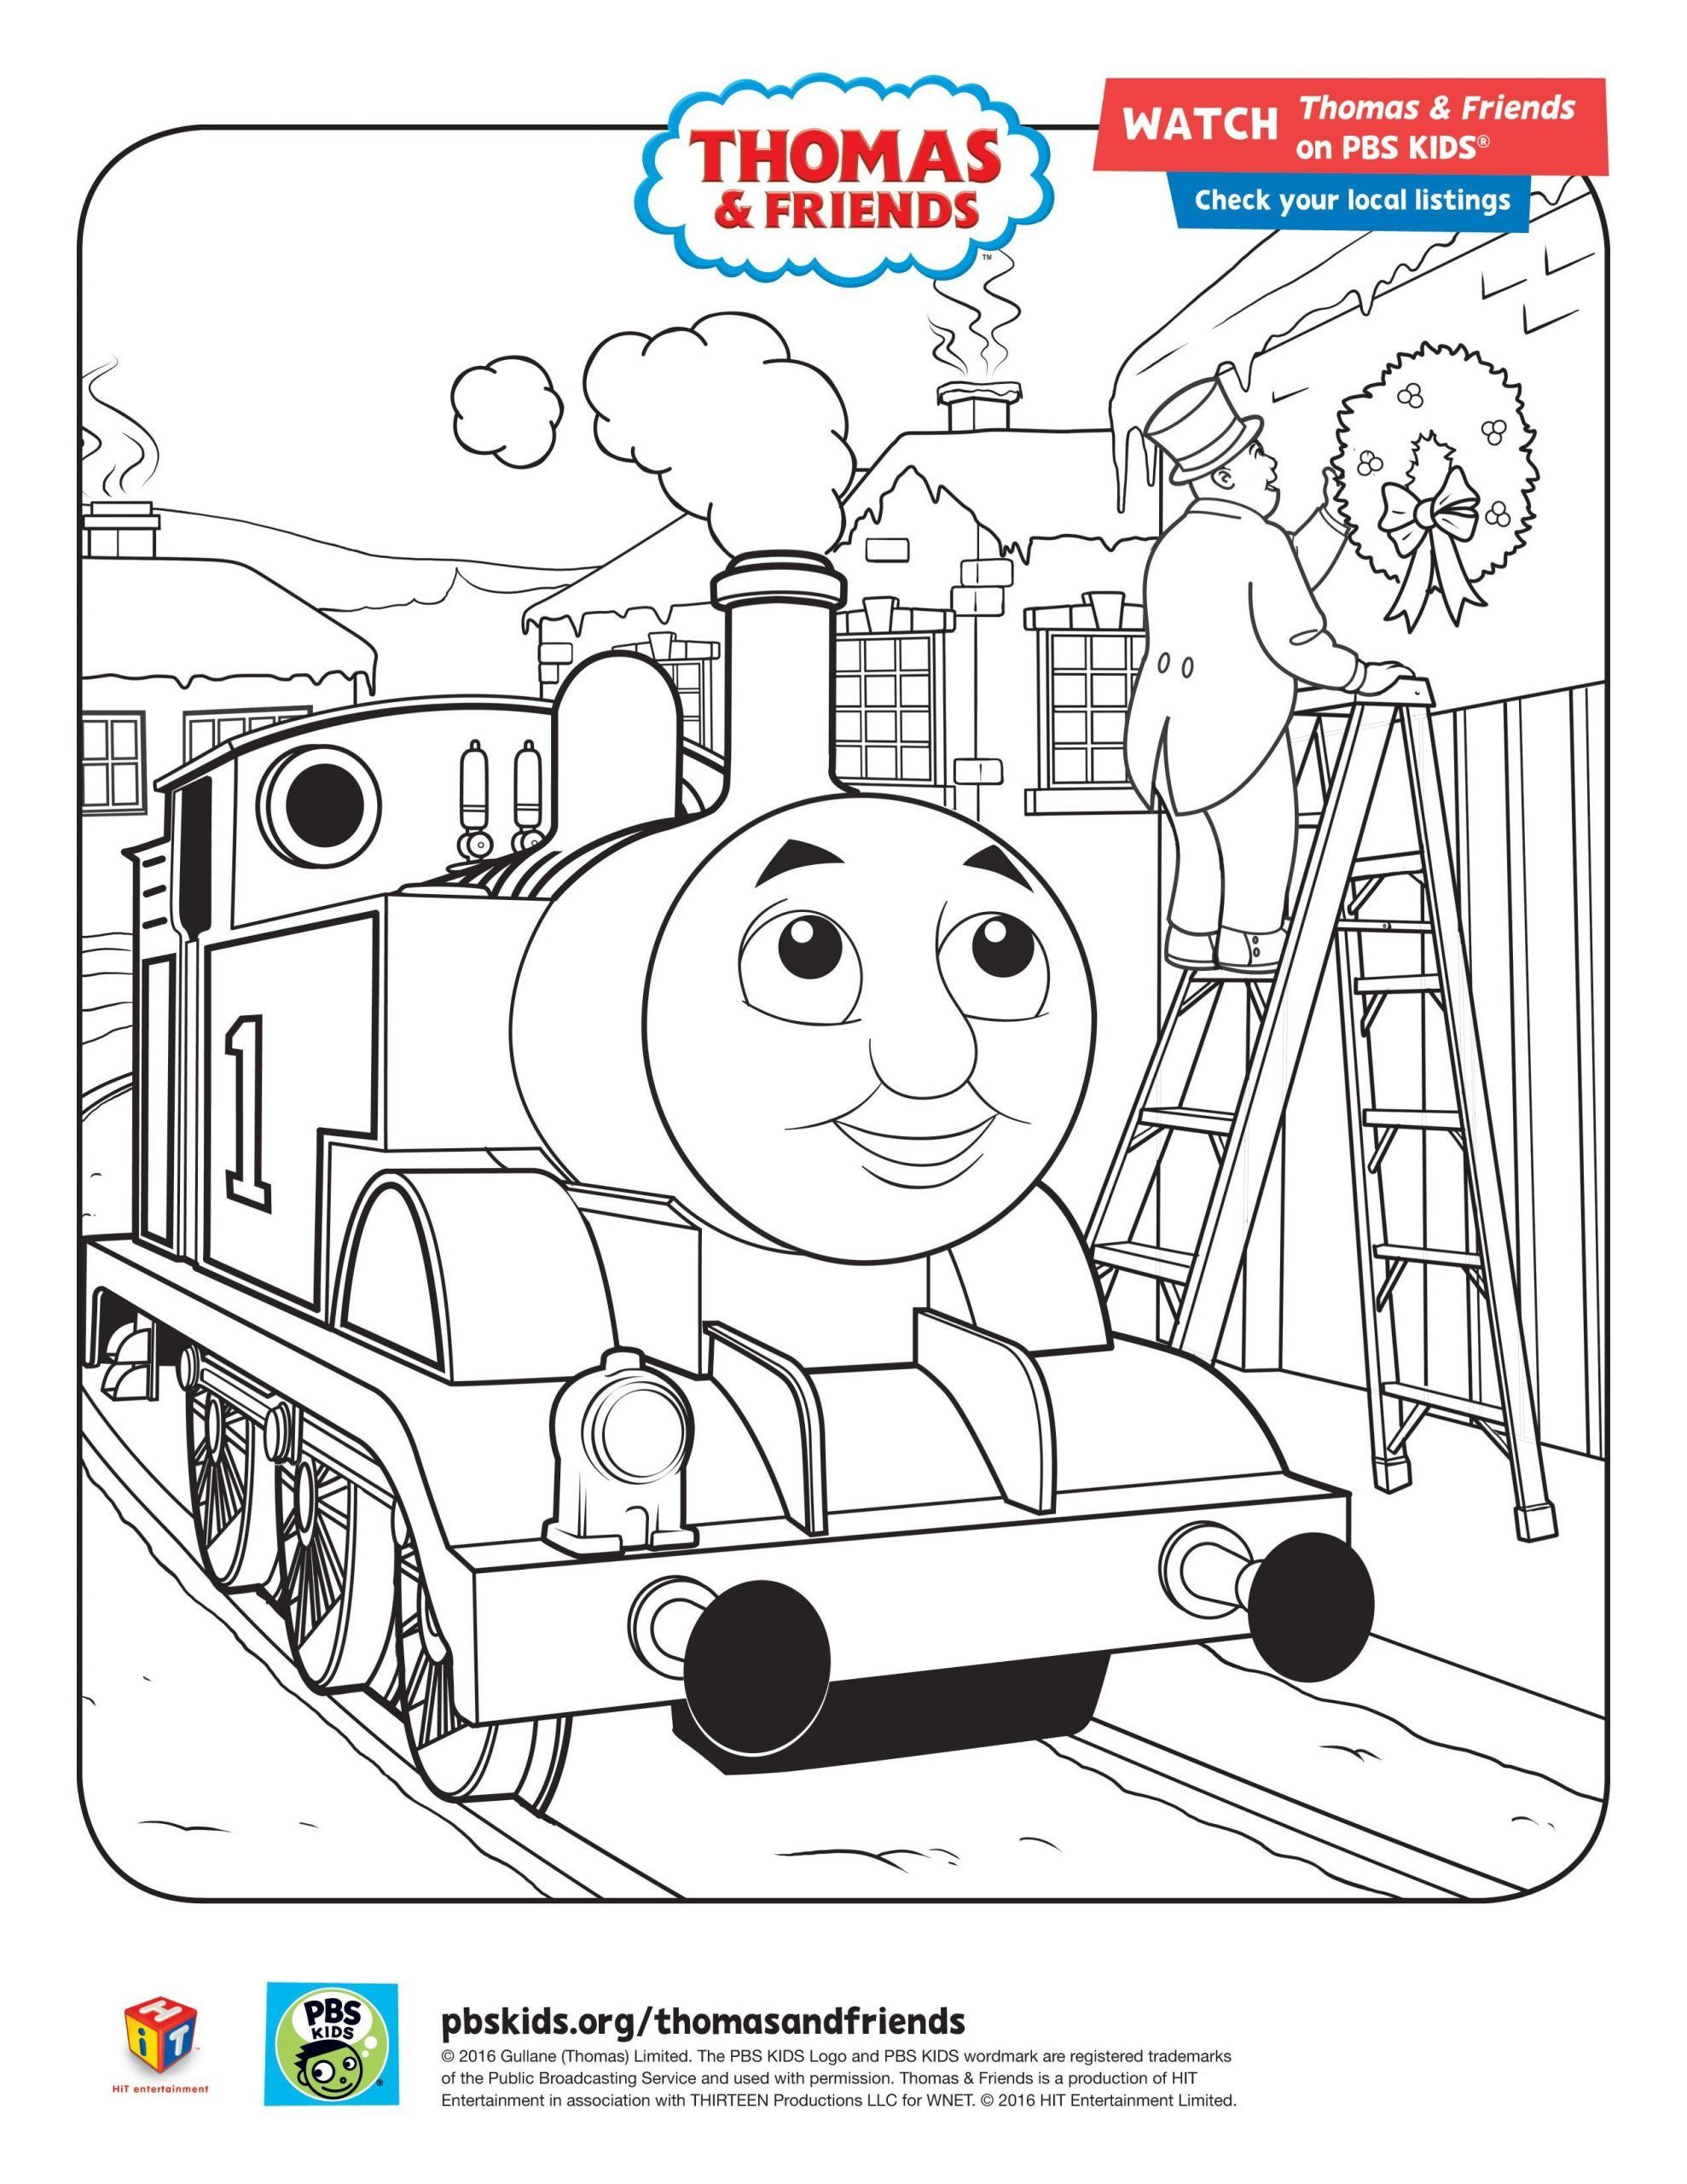 Thomas And Friends Coloring Books Thomas Friends Holiday Coloring Sheet Thomasandfriends Train Coloring Pages Valentines Day Coloring Page Coloring Books